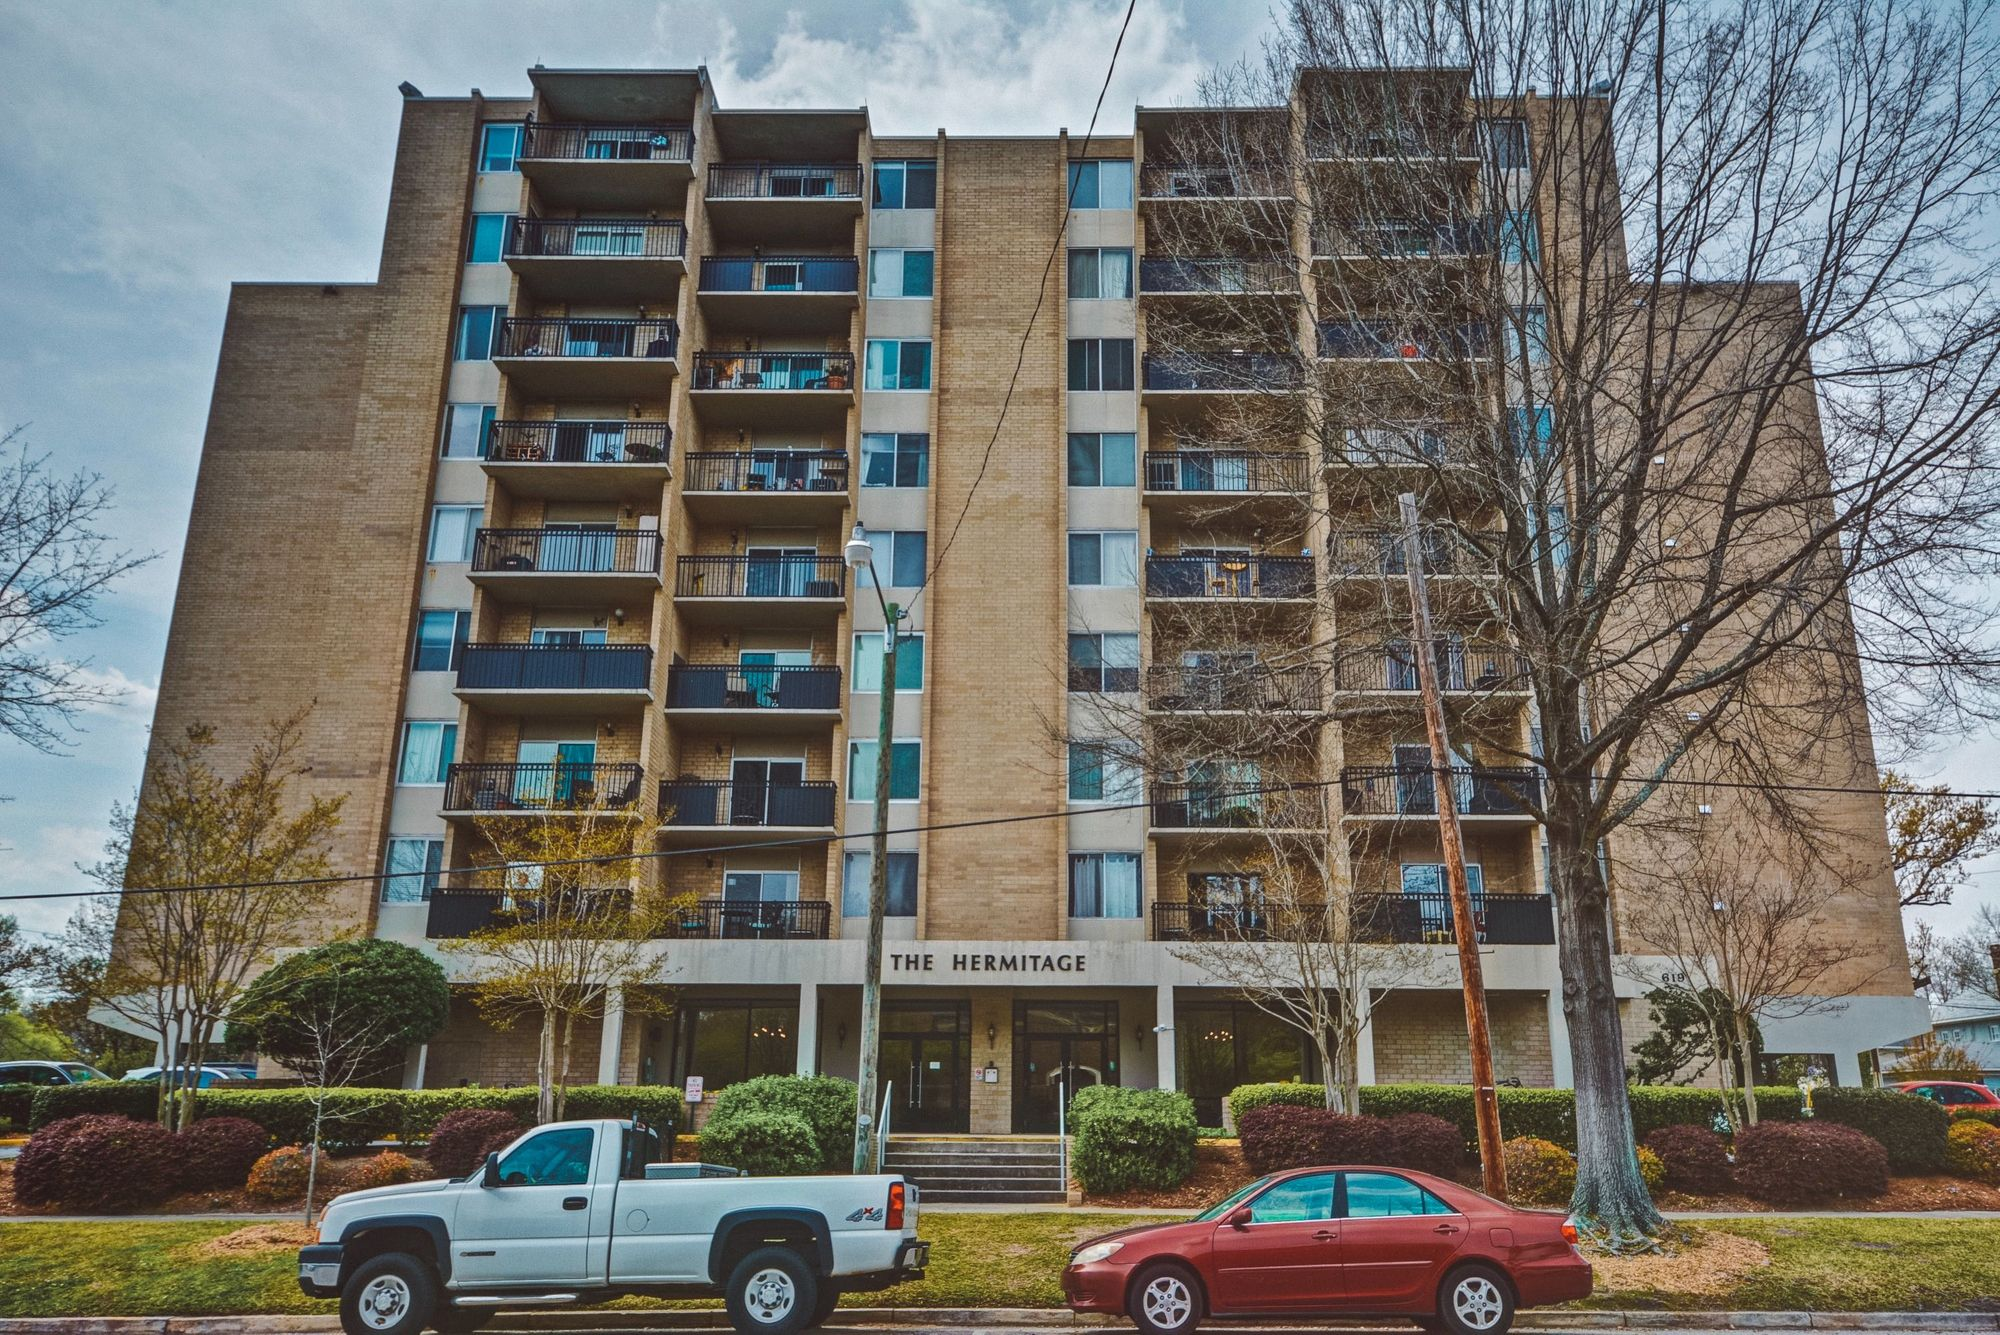 New Listing This 2 bedroom, 1.5 bathroom apartment located